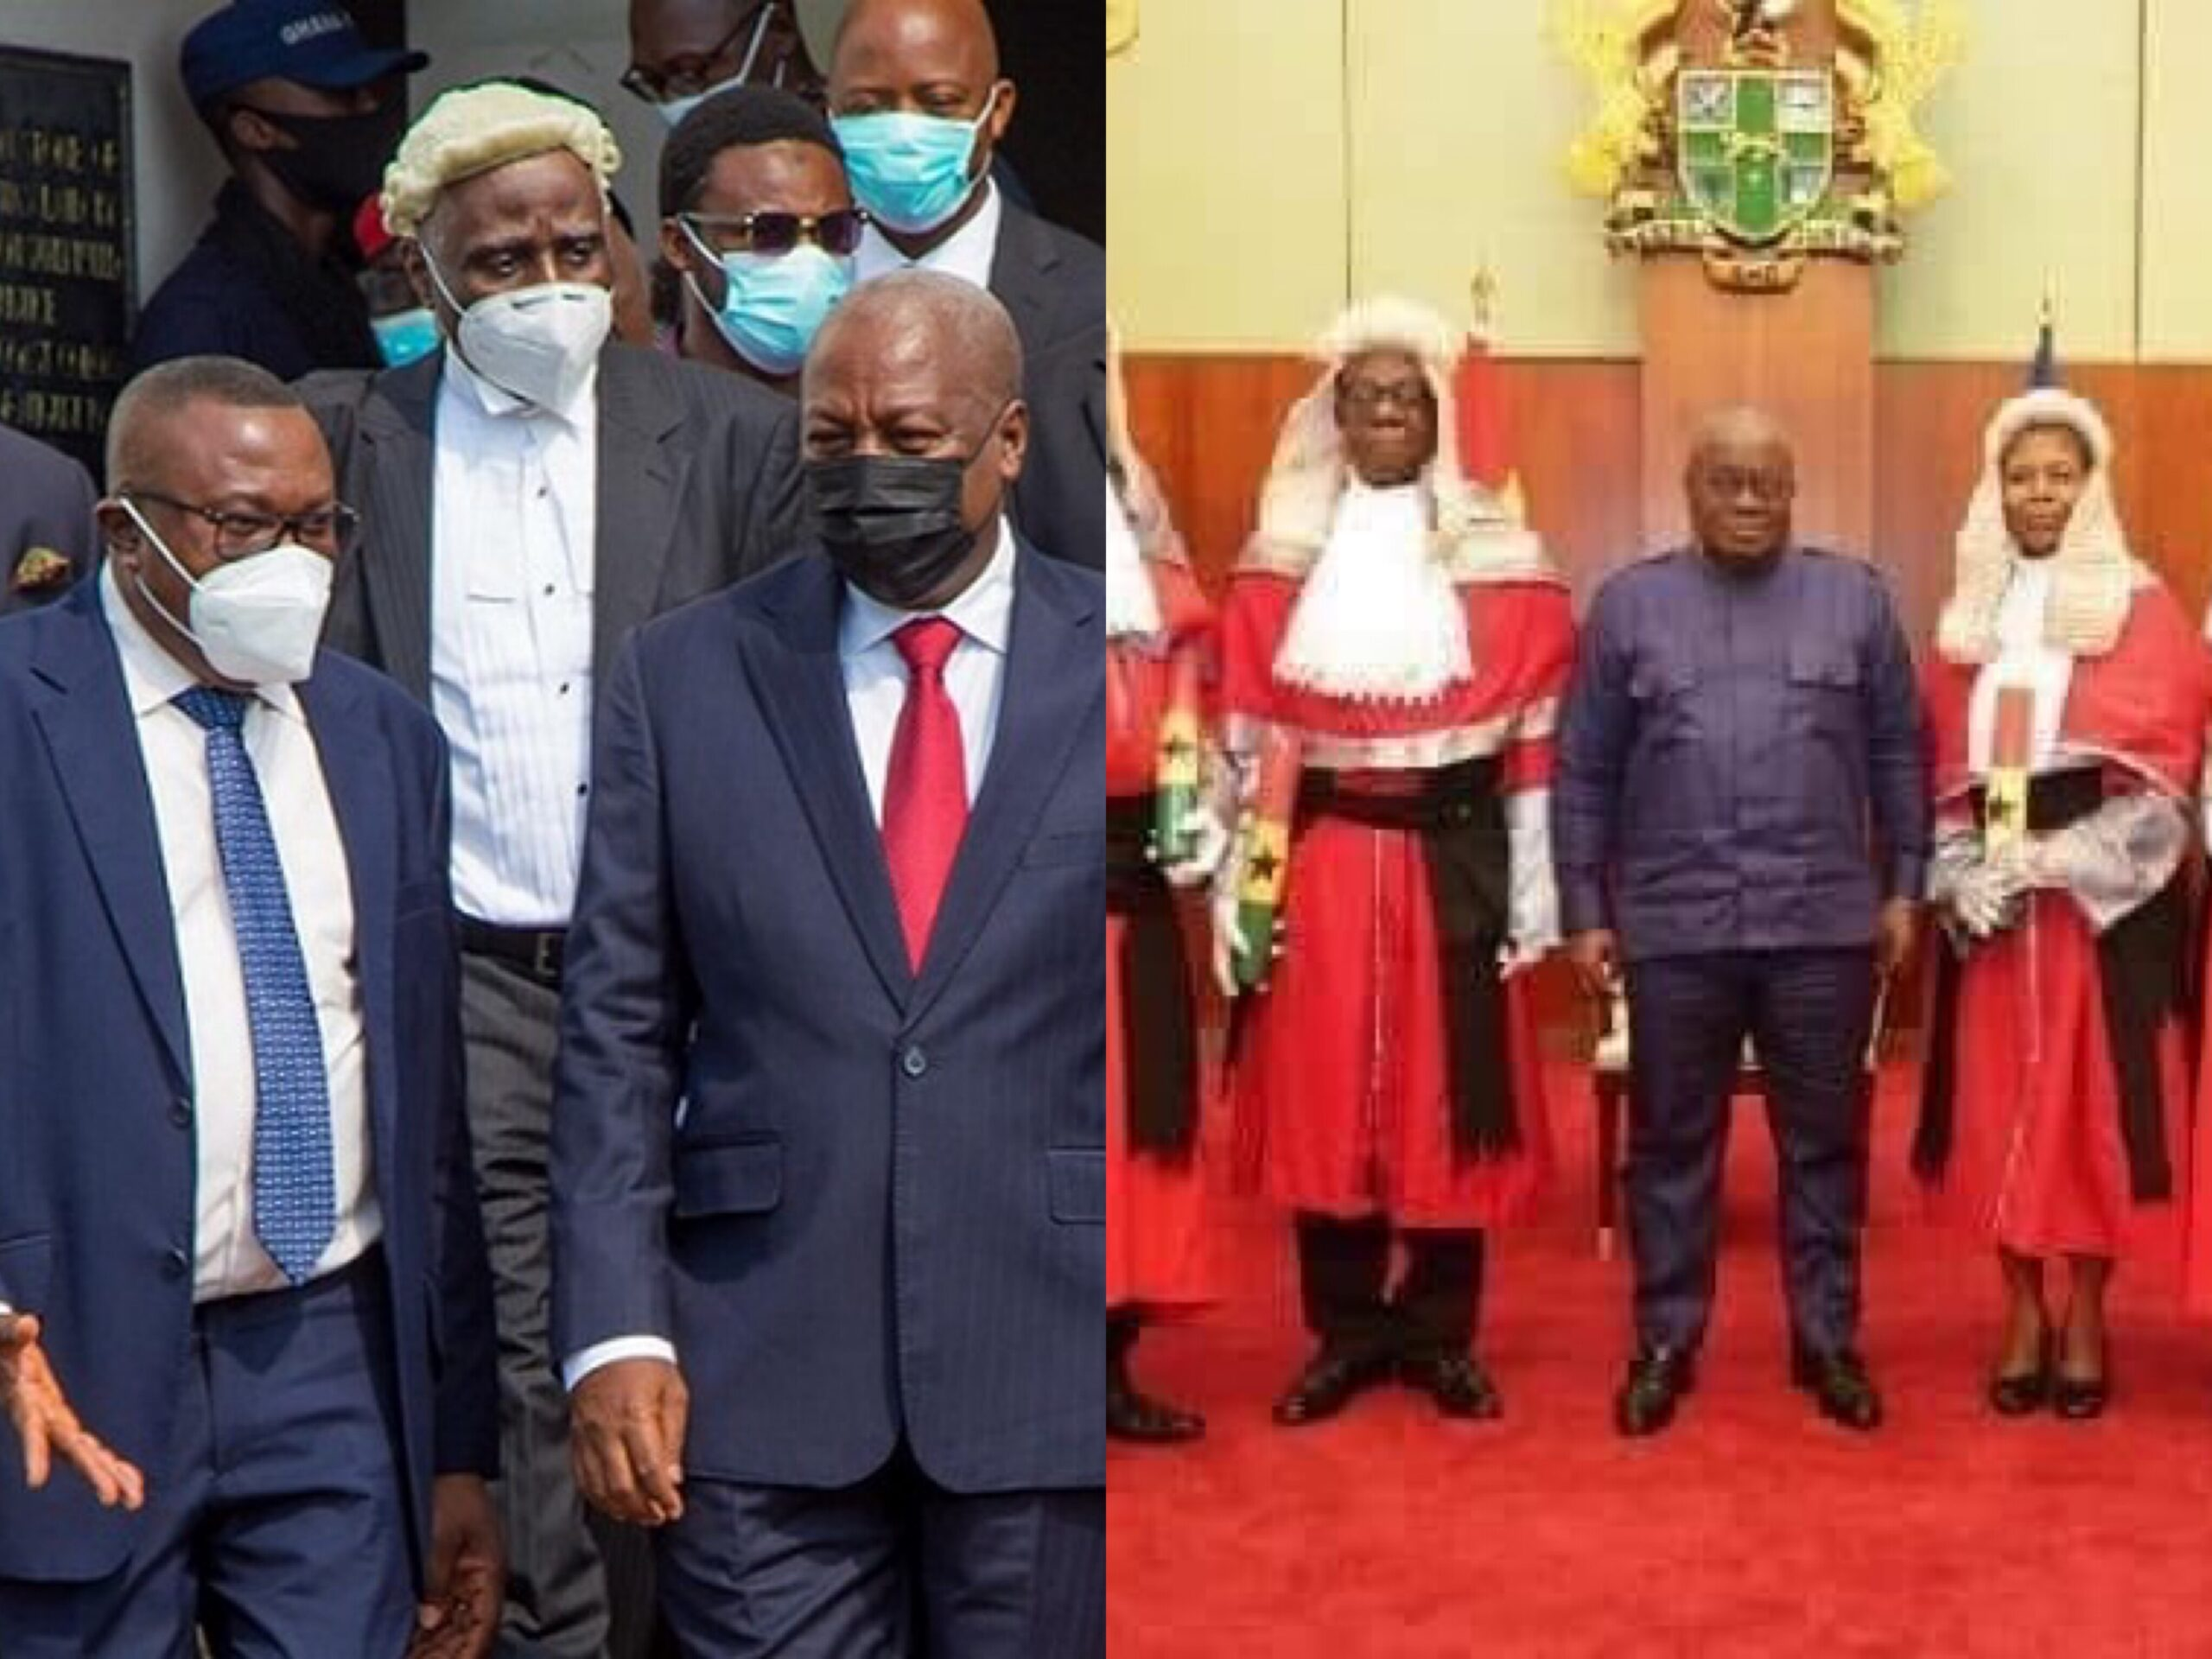 John Mahama's Lawyers Asks Chief Justice To Delay Today's Hearing By 2 Hours